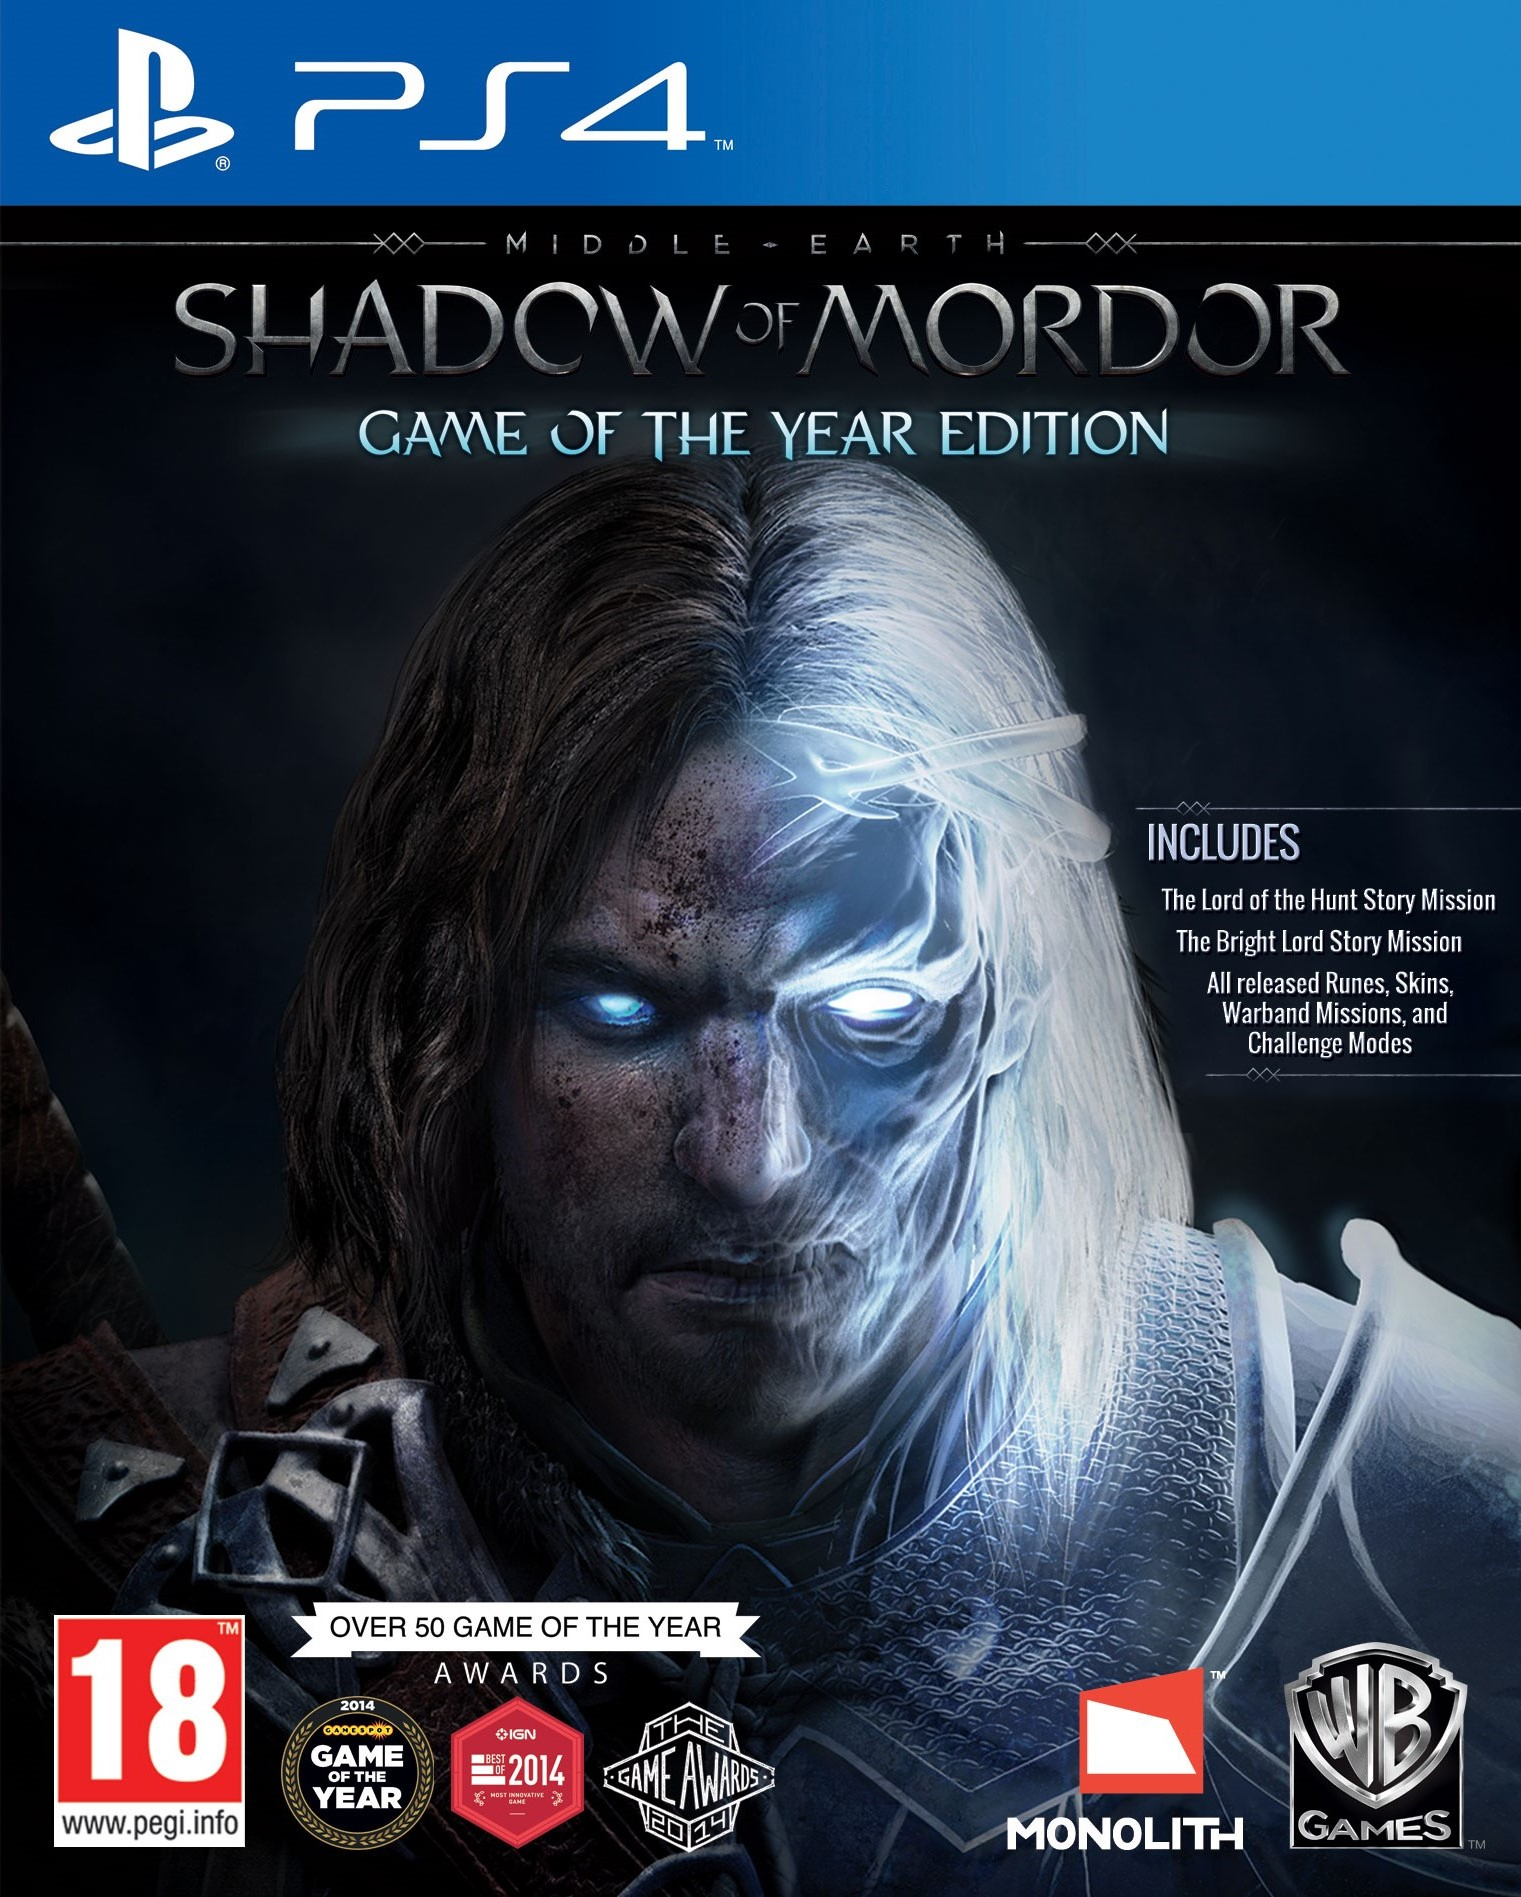 Middle-earth: Shadow of Mordor - Game of the Year Edition [PS4] 5.05 / 6.72 / 7.02 [EUR] (2014) [Русский] (v1.03)